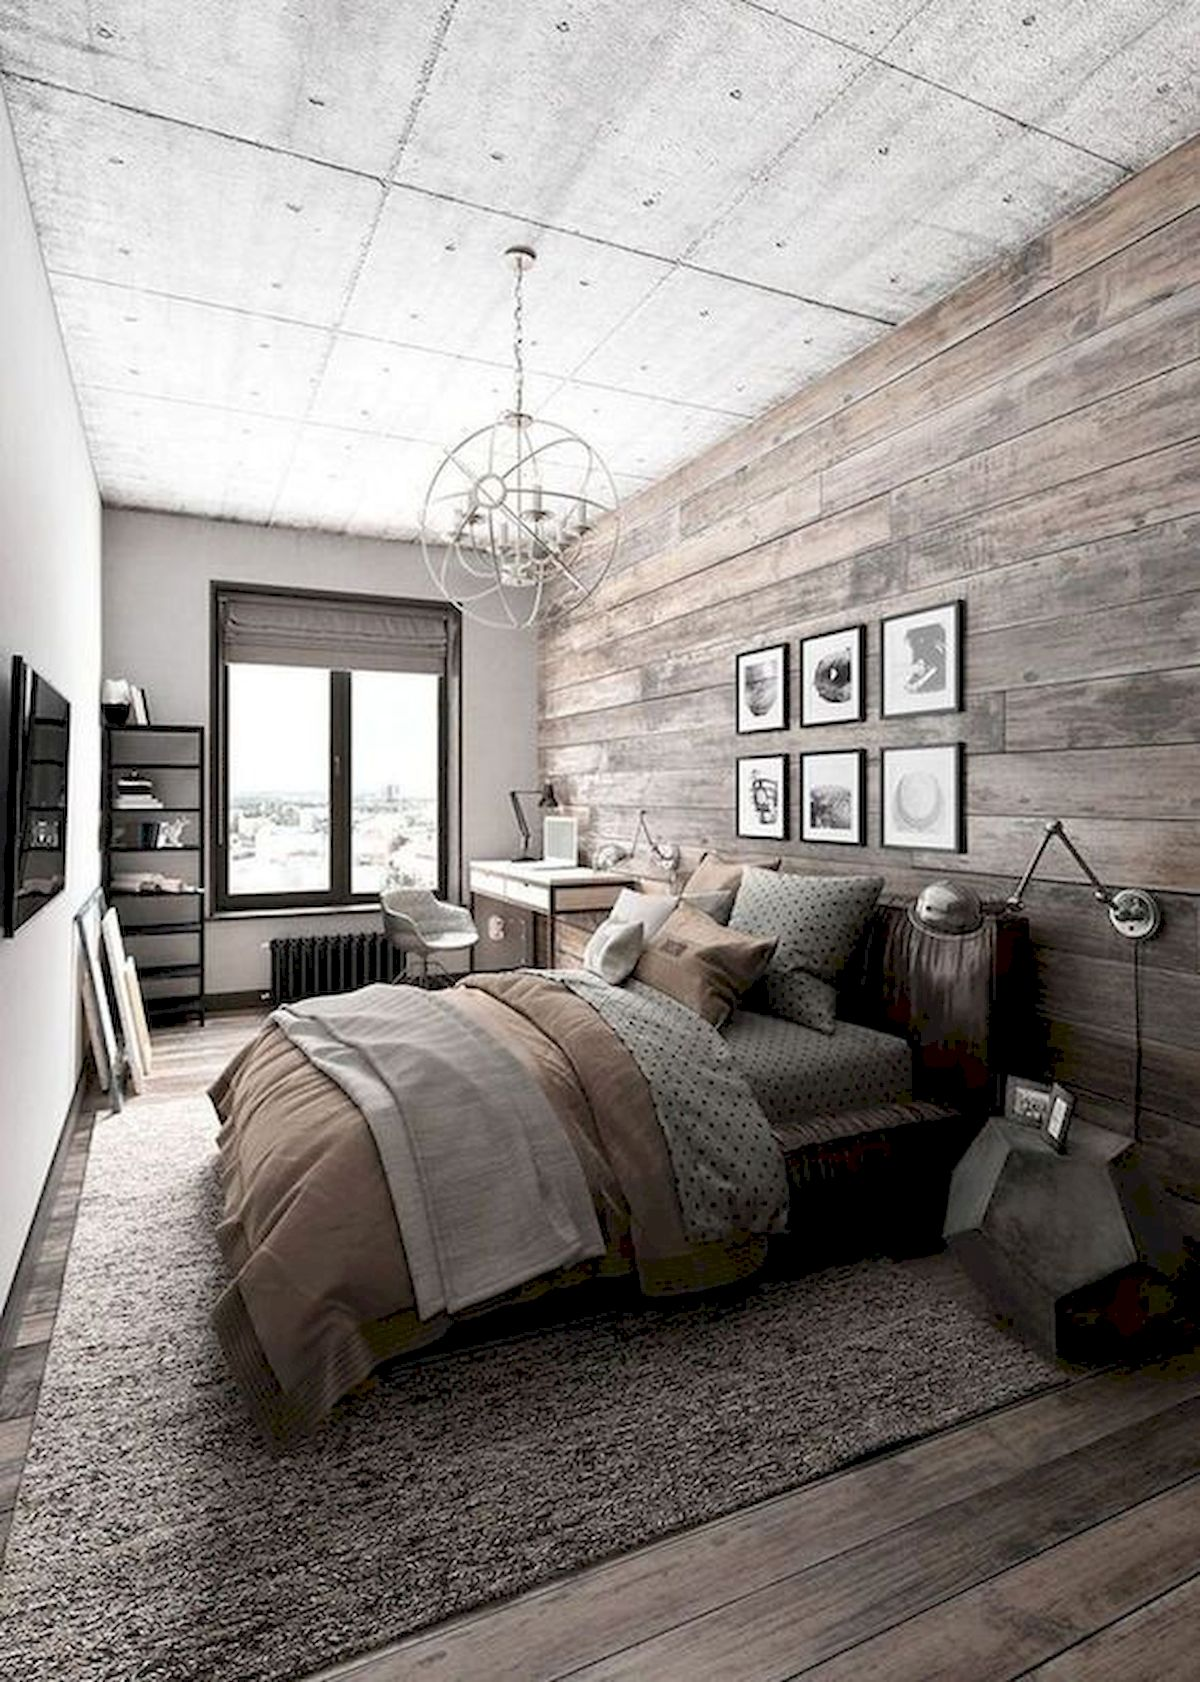 50 awesome wall decor ideas for bedroom 40  house8055